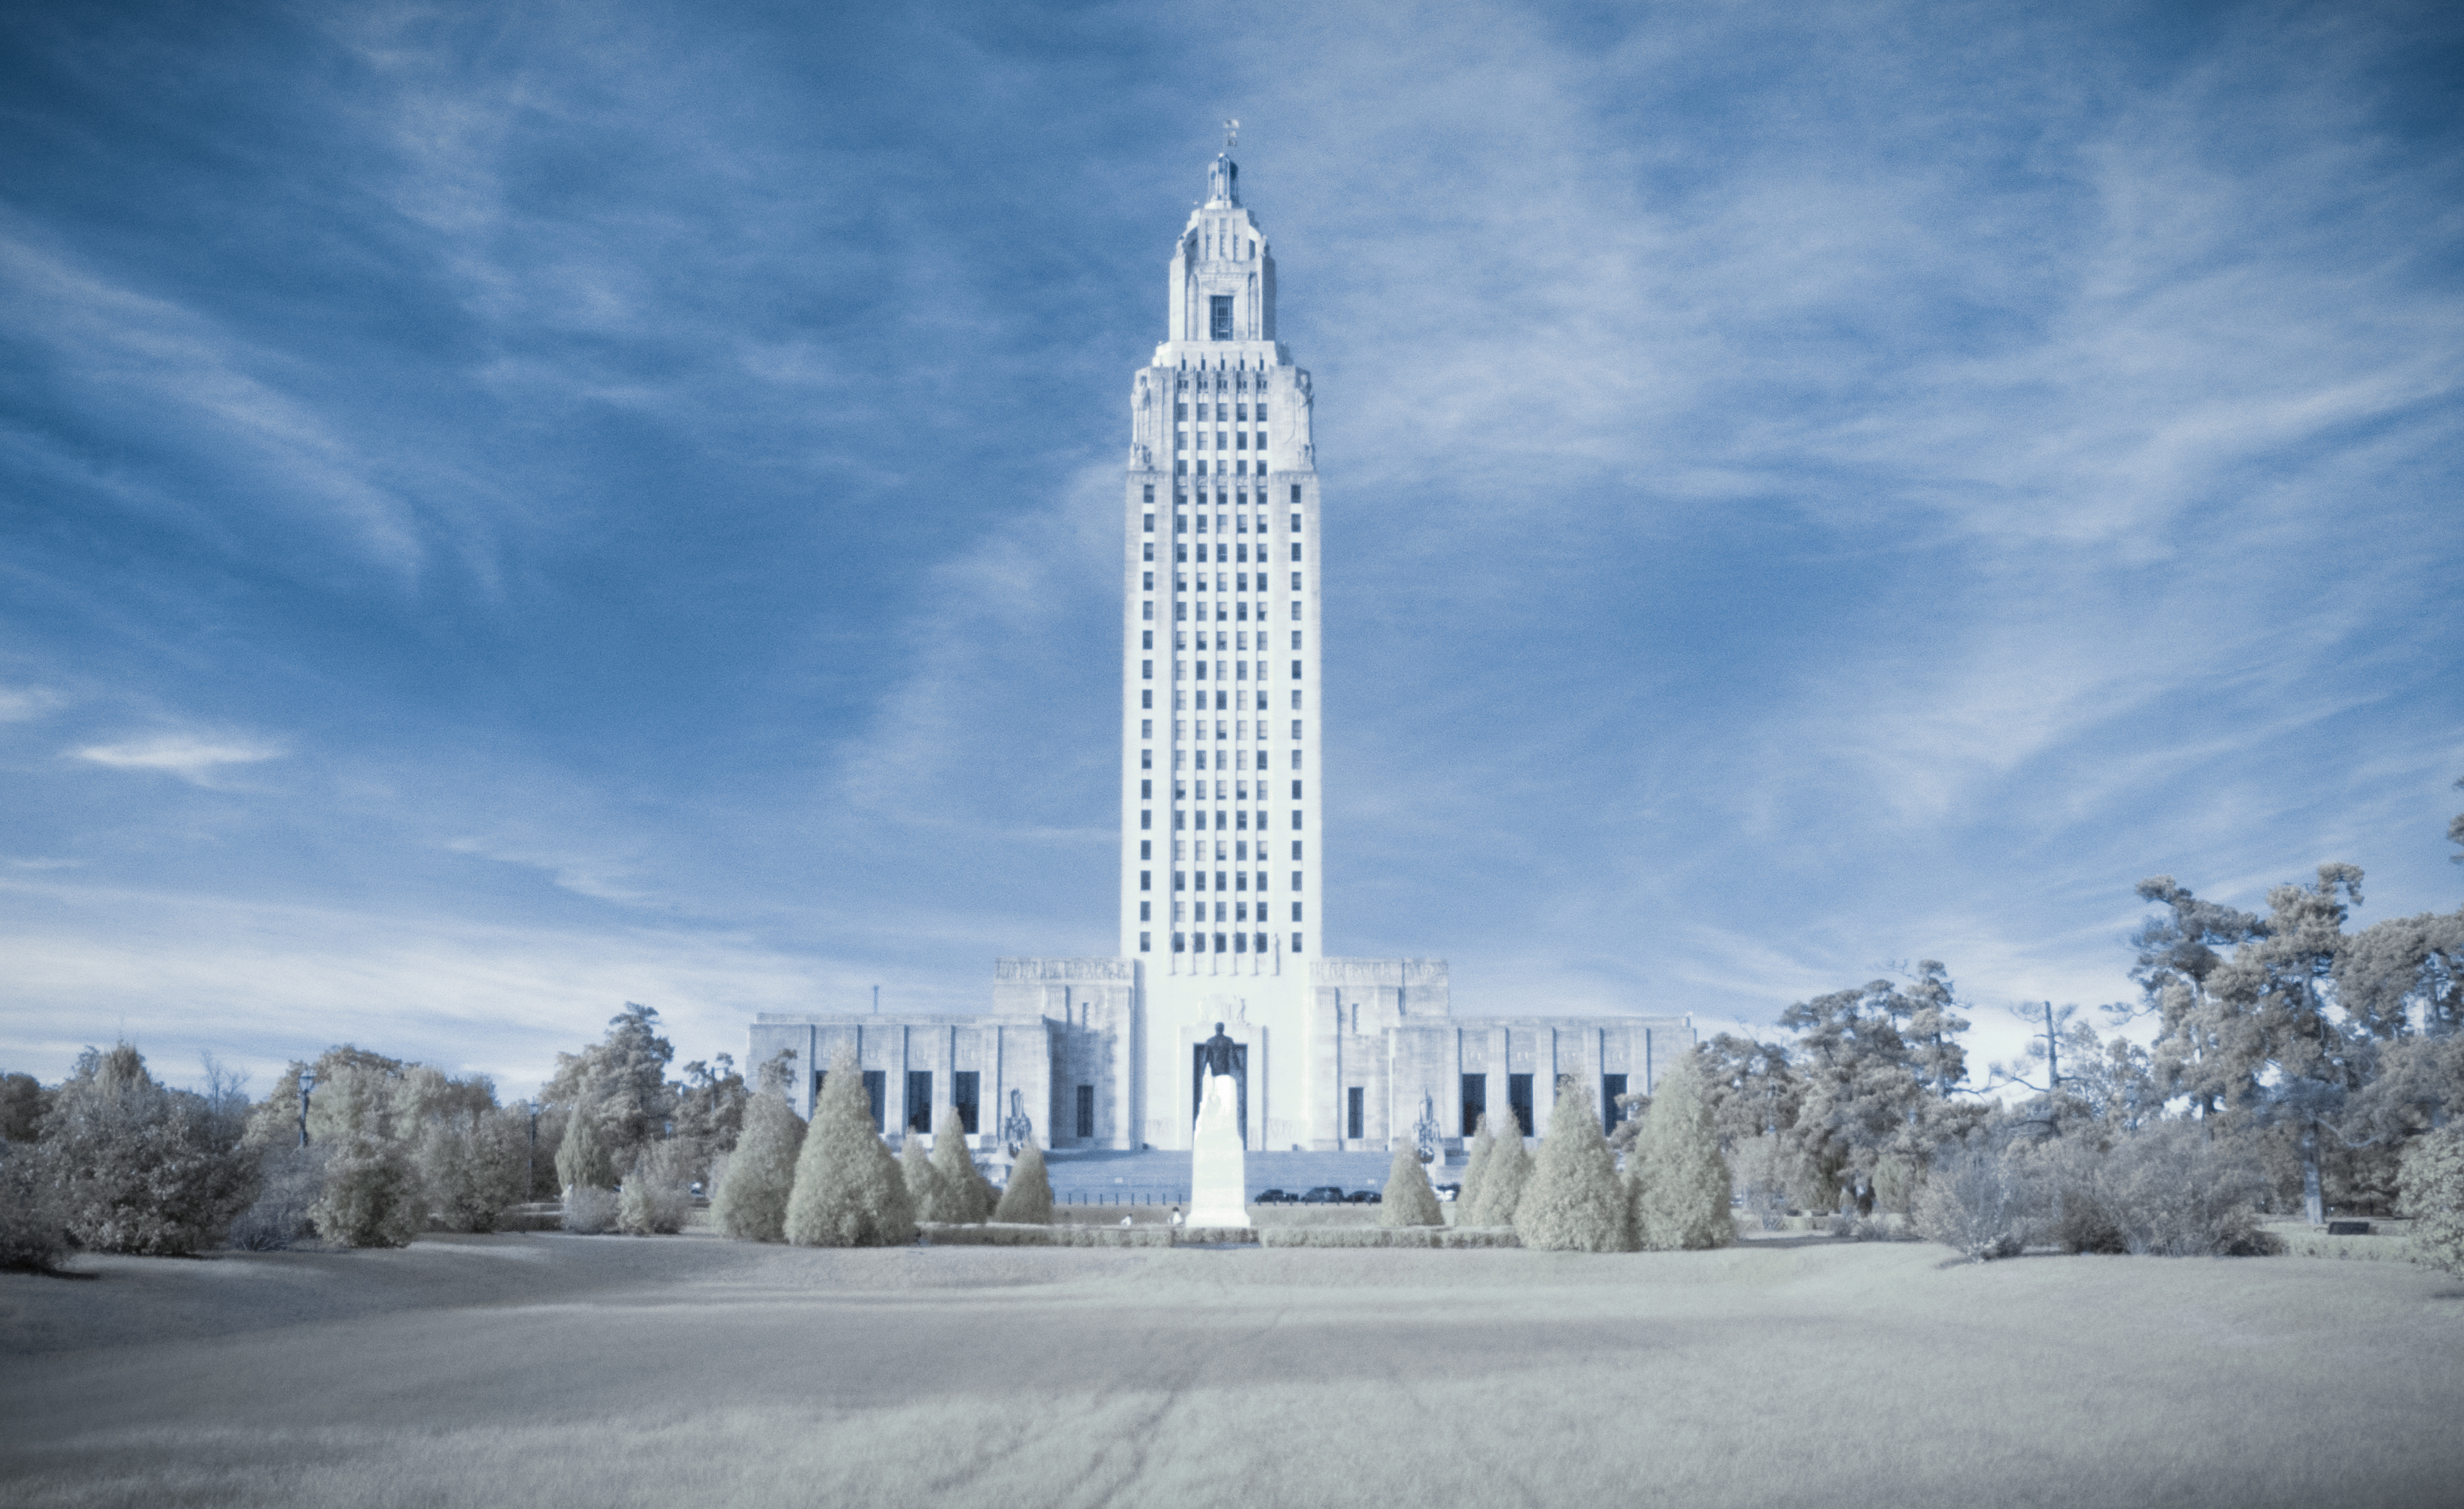 Louisiana State Capital in Infrared